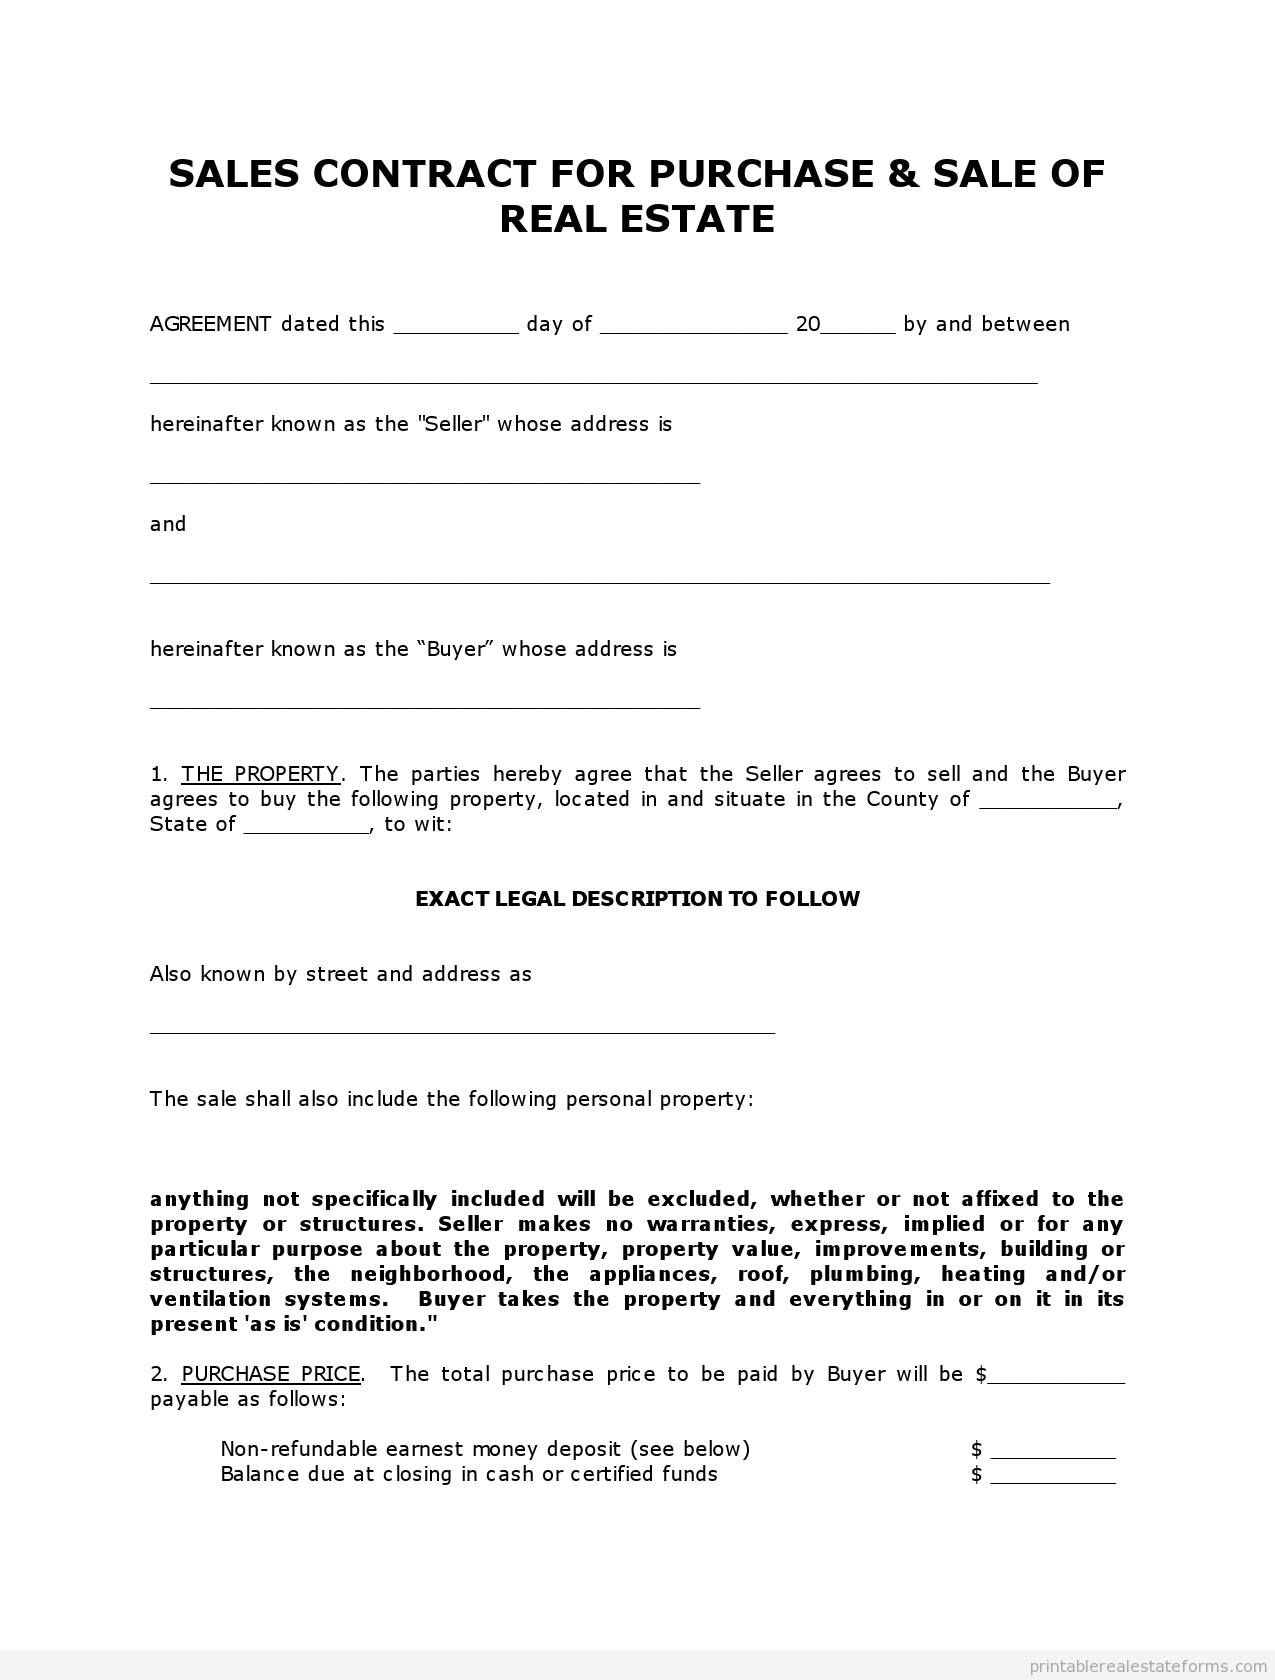 Free Printable Land Contract Forms (Word File) - Free Printable Purchase Agreement Forms